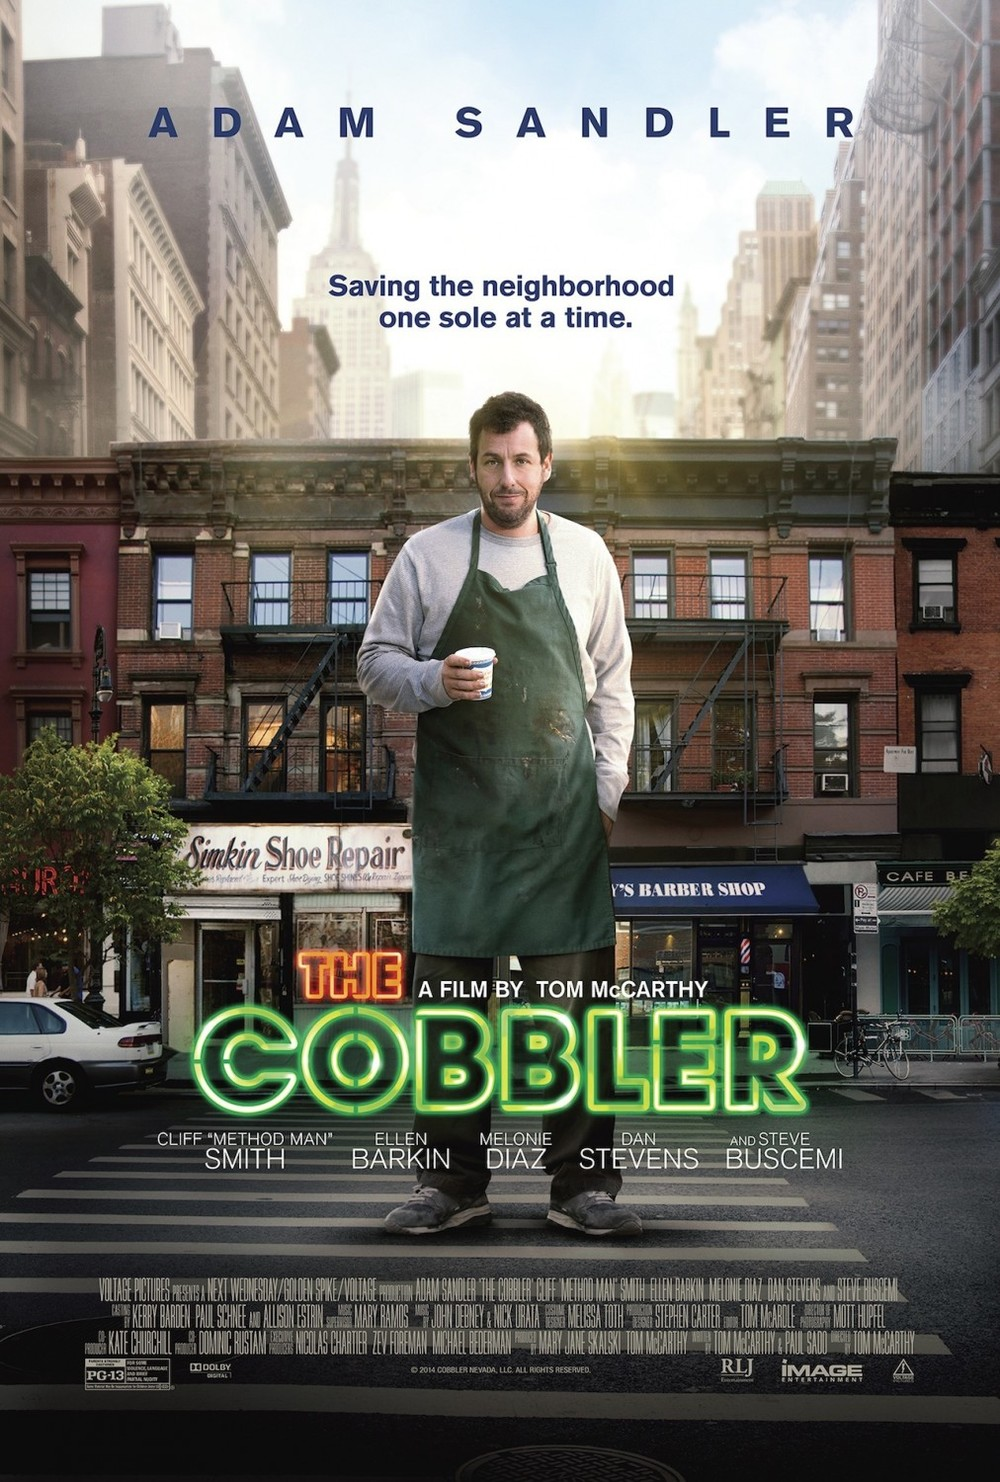 A huge, comatose Adam Sandler stands awkwardly in the middle of a street looking like a dumb jerk. Nothing is cobble-y about this poster, except for the elements they cobbled together to make it.